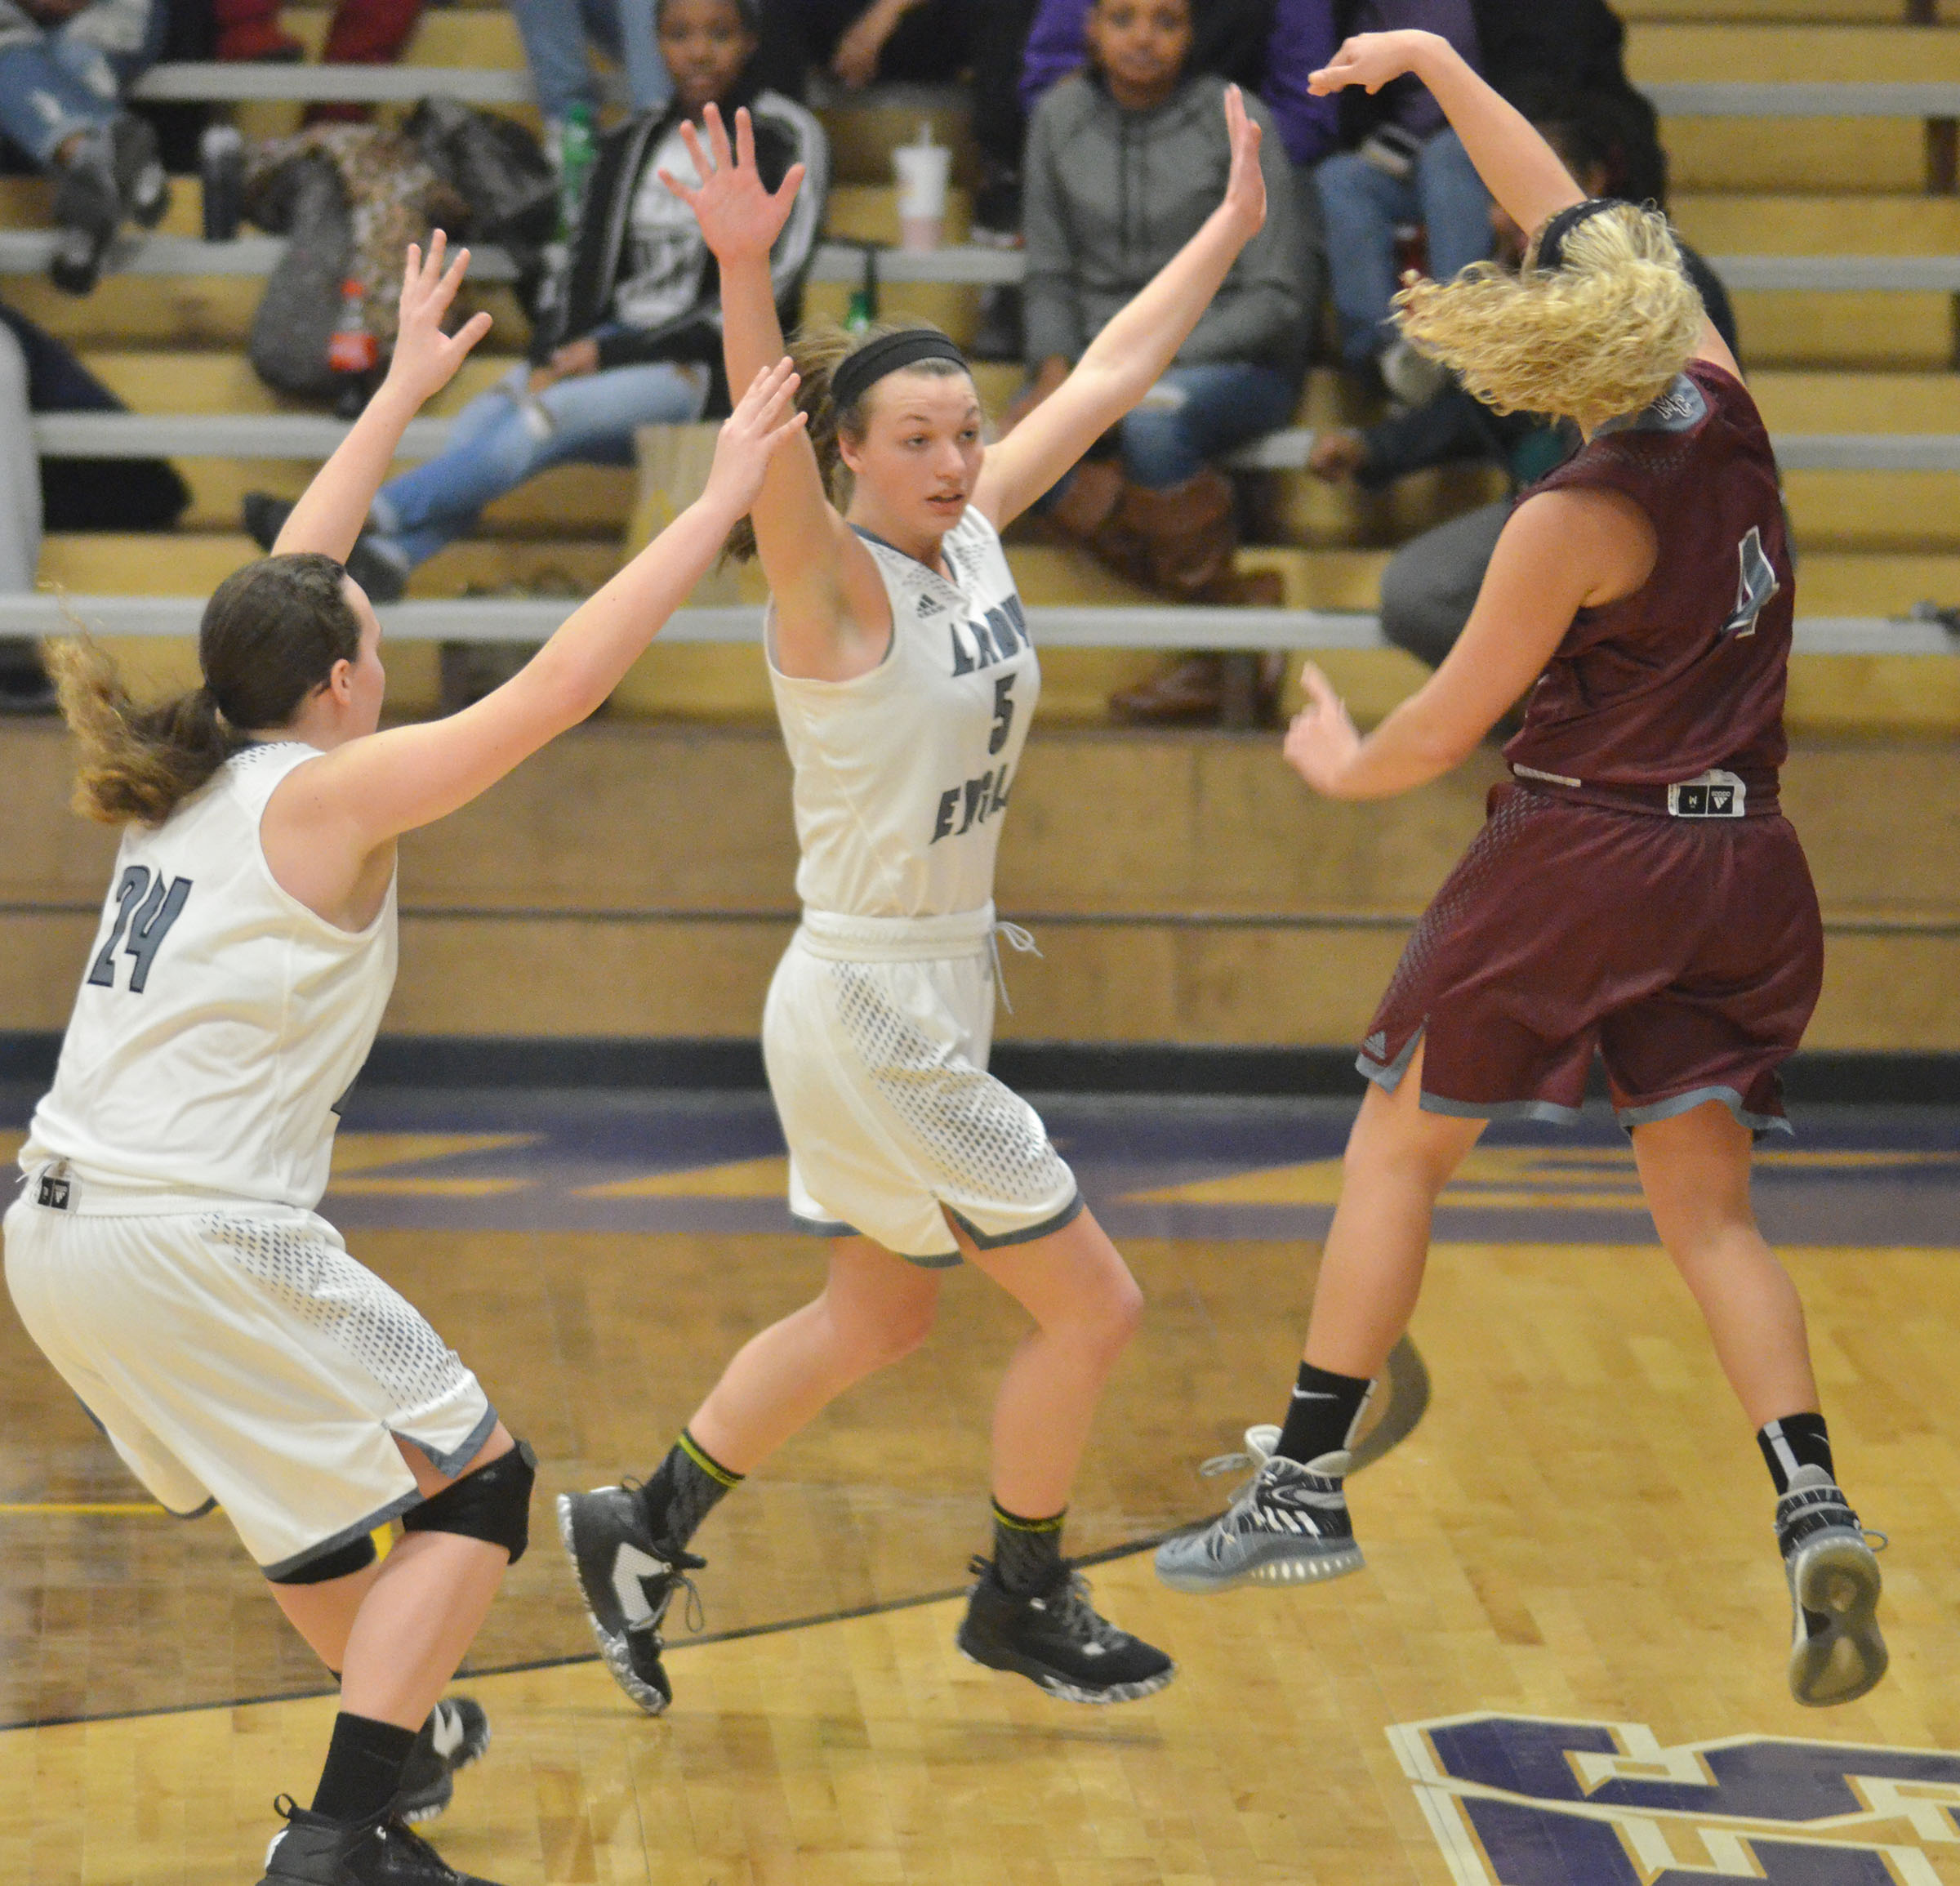 CHS freshman Katelyn Miller, at left, and senior Caylie Blair jump to block a shot.